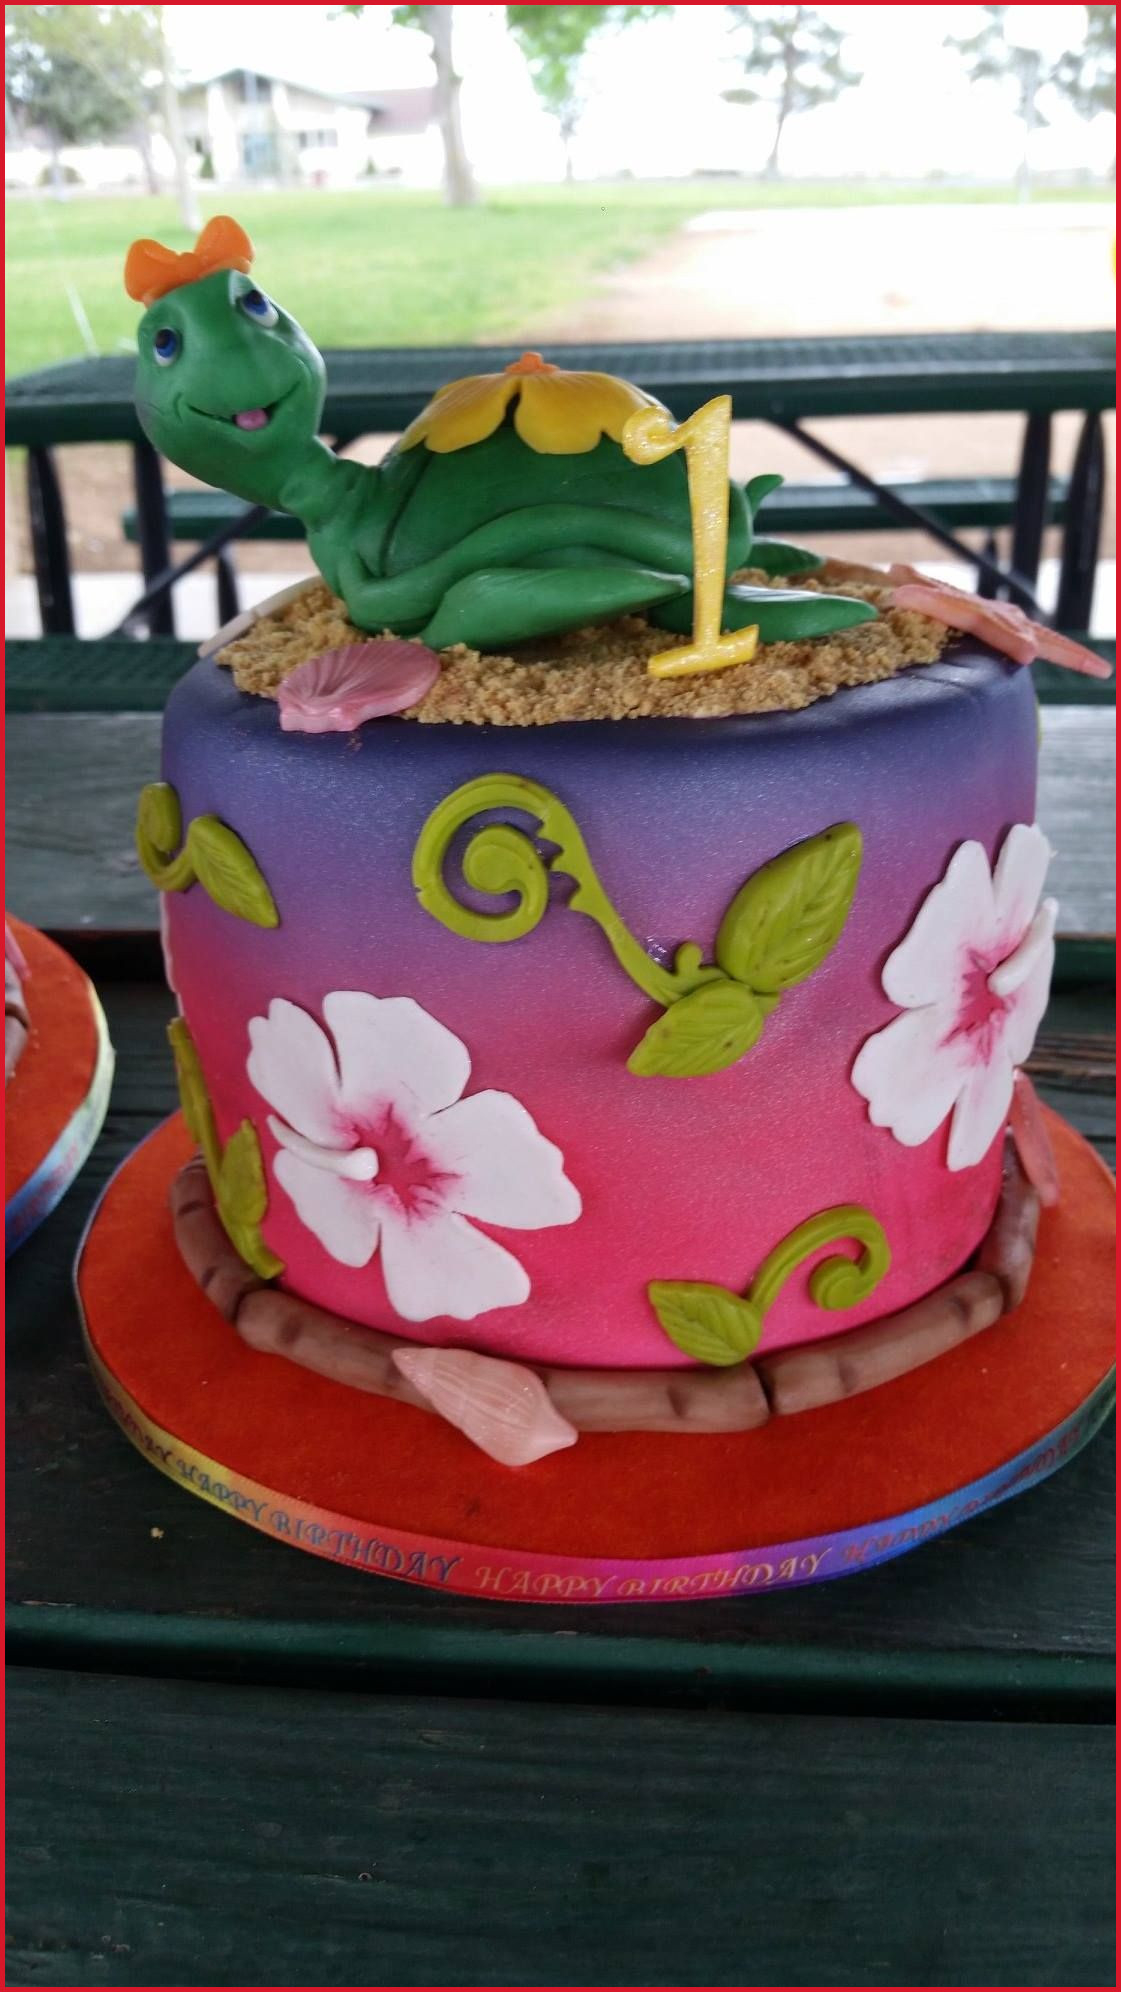 Luau Birthday Cakes Luau Birthday Cake 155051 Luau 1st Birthday Cake Acbrubbishremoval